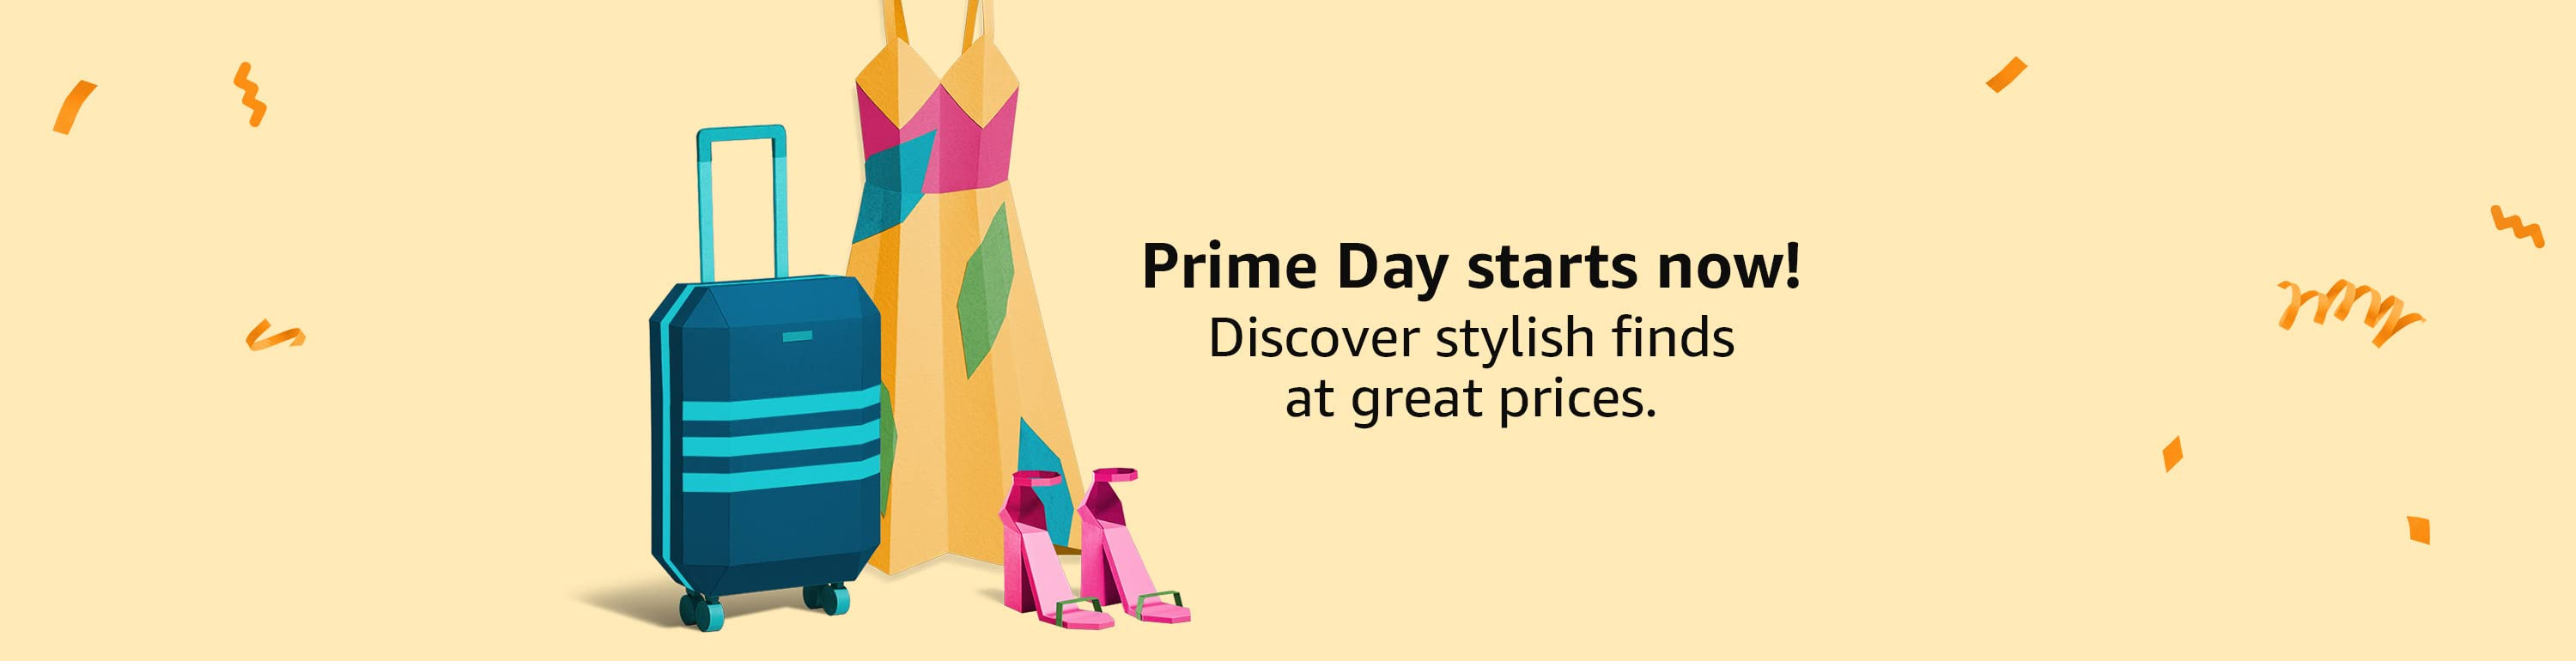 Prime Day start now!